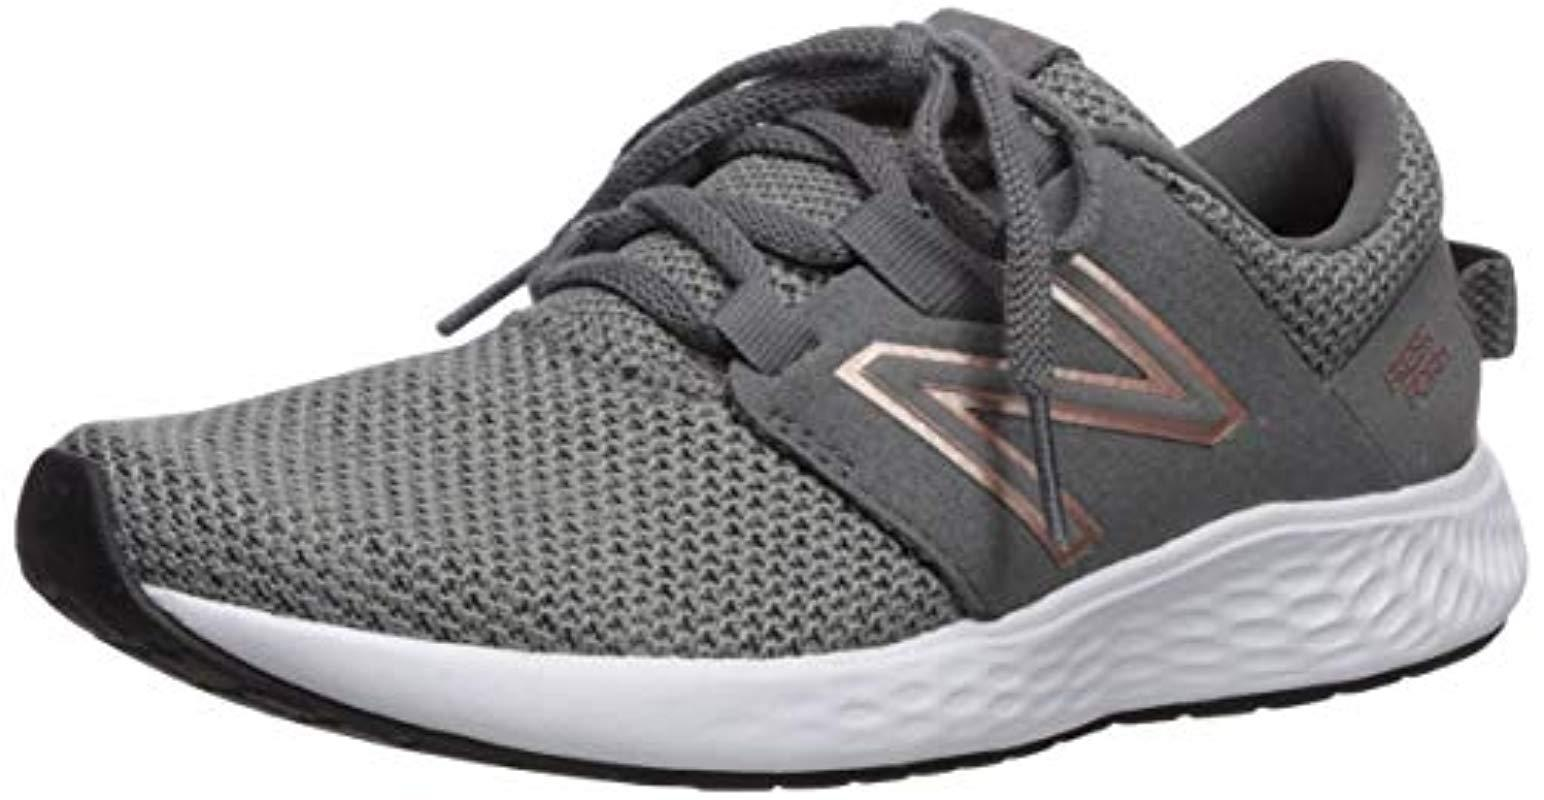 New Balance Multicolor Vero Racer V1 Fresh Foam Sneaker, Castlerockphantom, 7 W Us Lyst